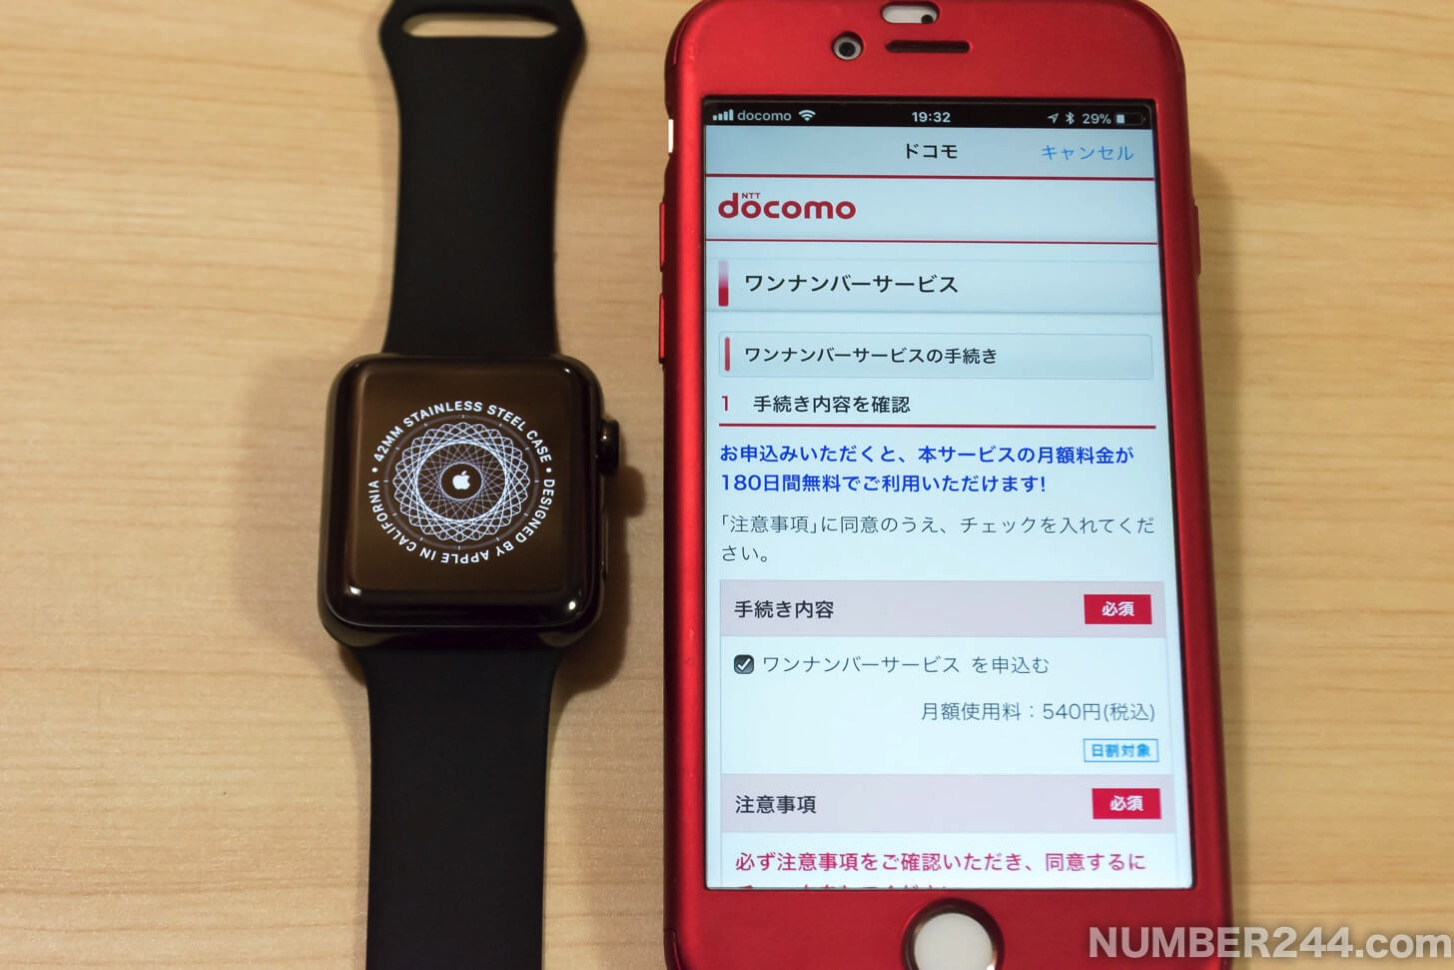 Initial setting of Apple Watch 19